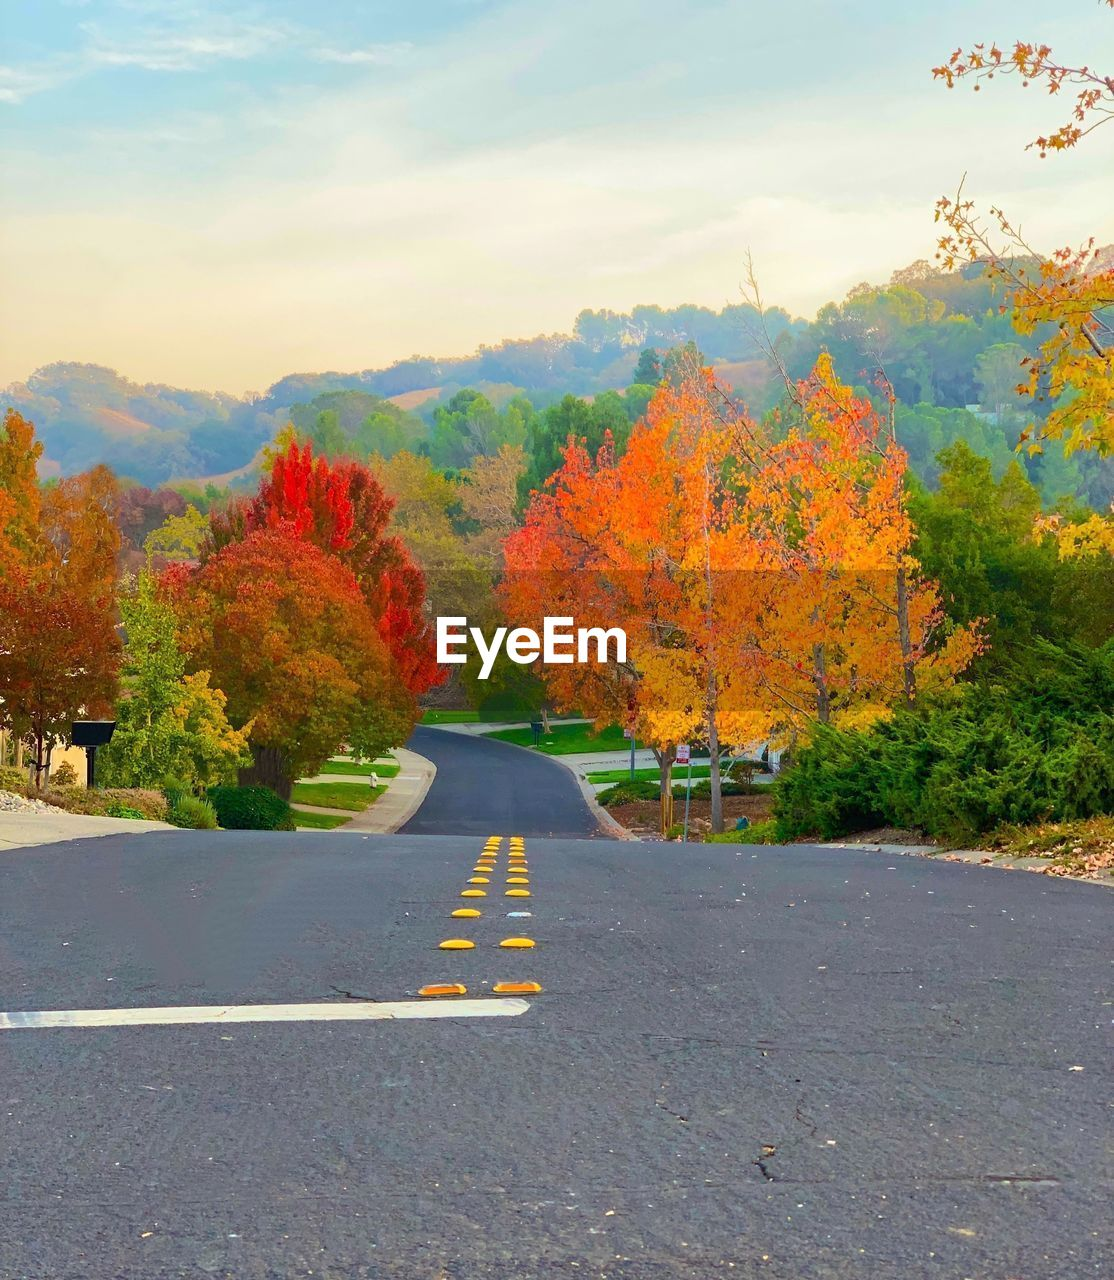 road, autumn, tree, plant, change, direction, transportation, sign, the way forward, beauty in nature, nature, no people, orange color, day, sky, marking, road marking, tranquility, cloud - sky, symbol, outdoors, dividing line